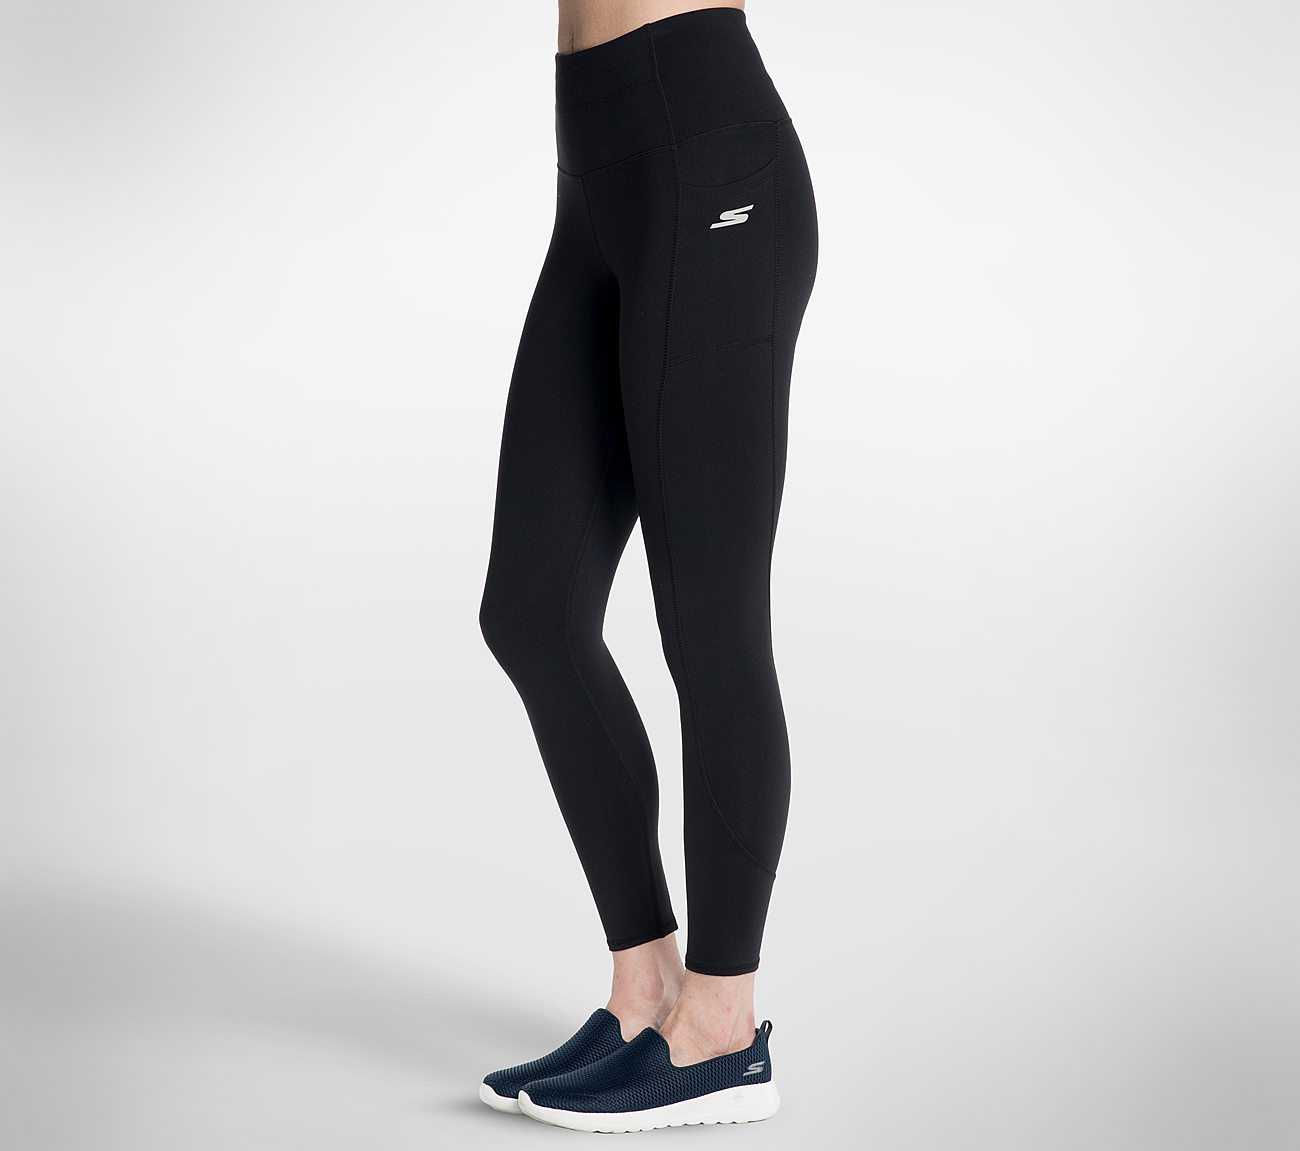 42534f2dcd523 Skechers Backbend High Waisted Legging. Click/tap to zoom · Alternate View  1. Alternate View 2. Alternate View 3